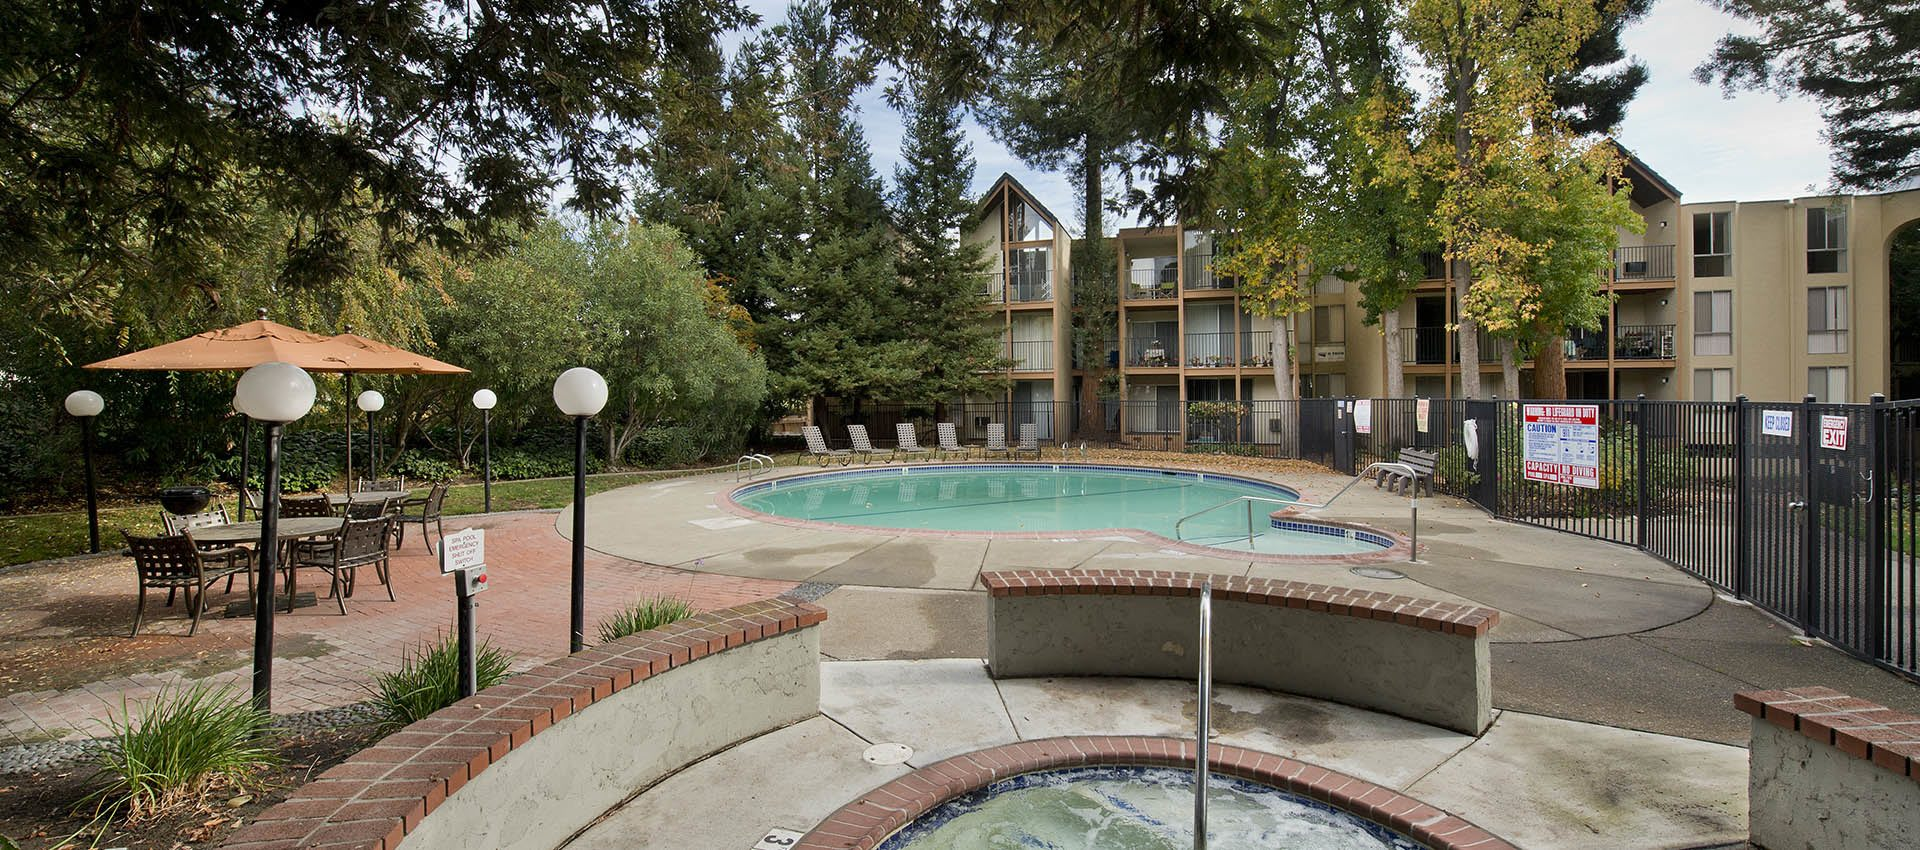 Pool deck with spa at Atrium Downtown in Walnut Creek, California